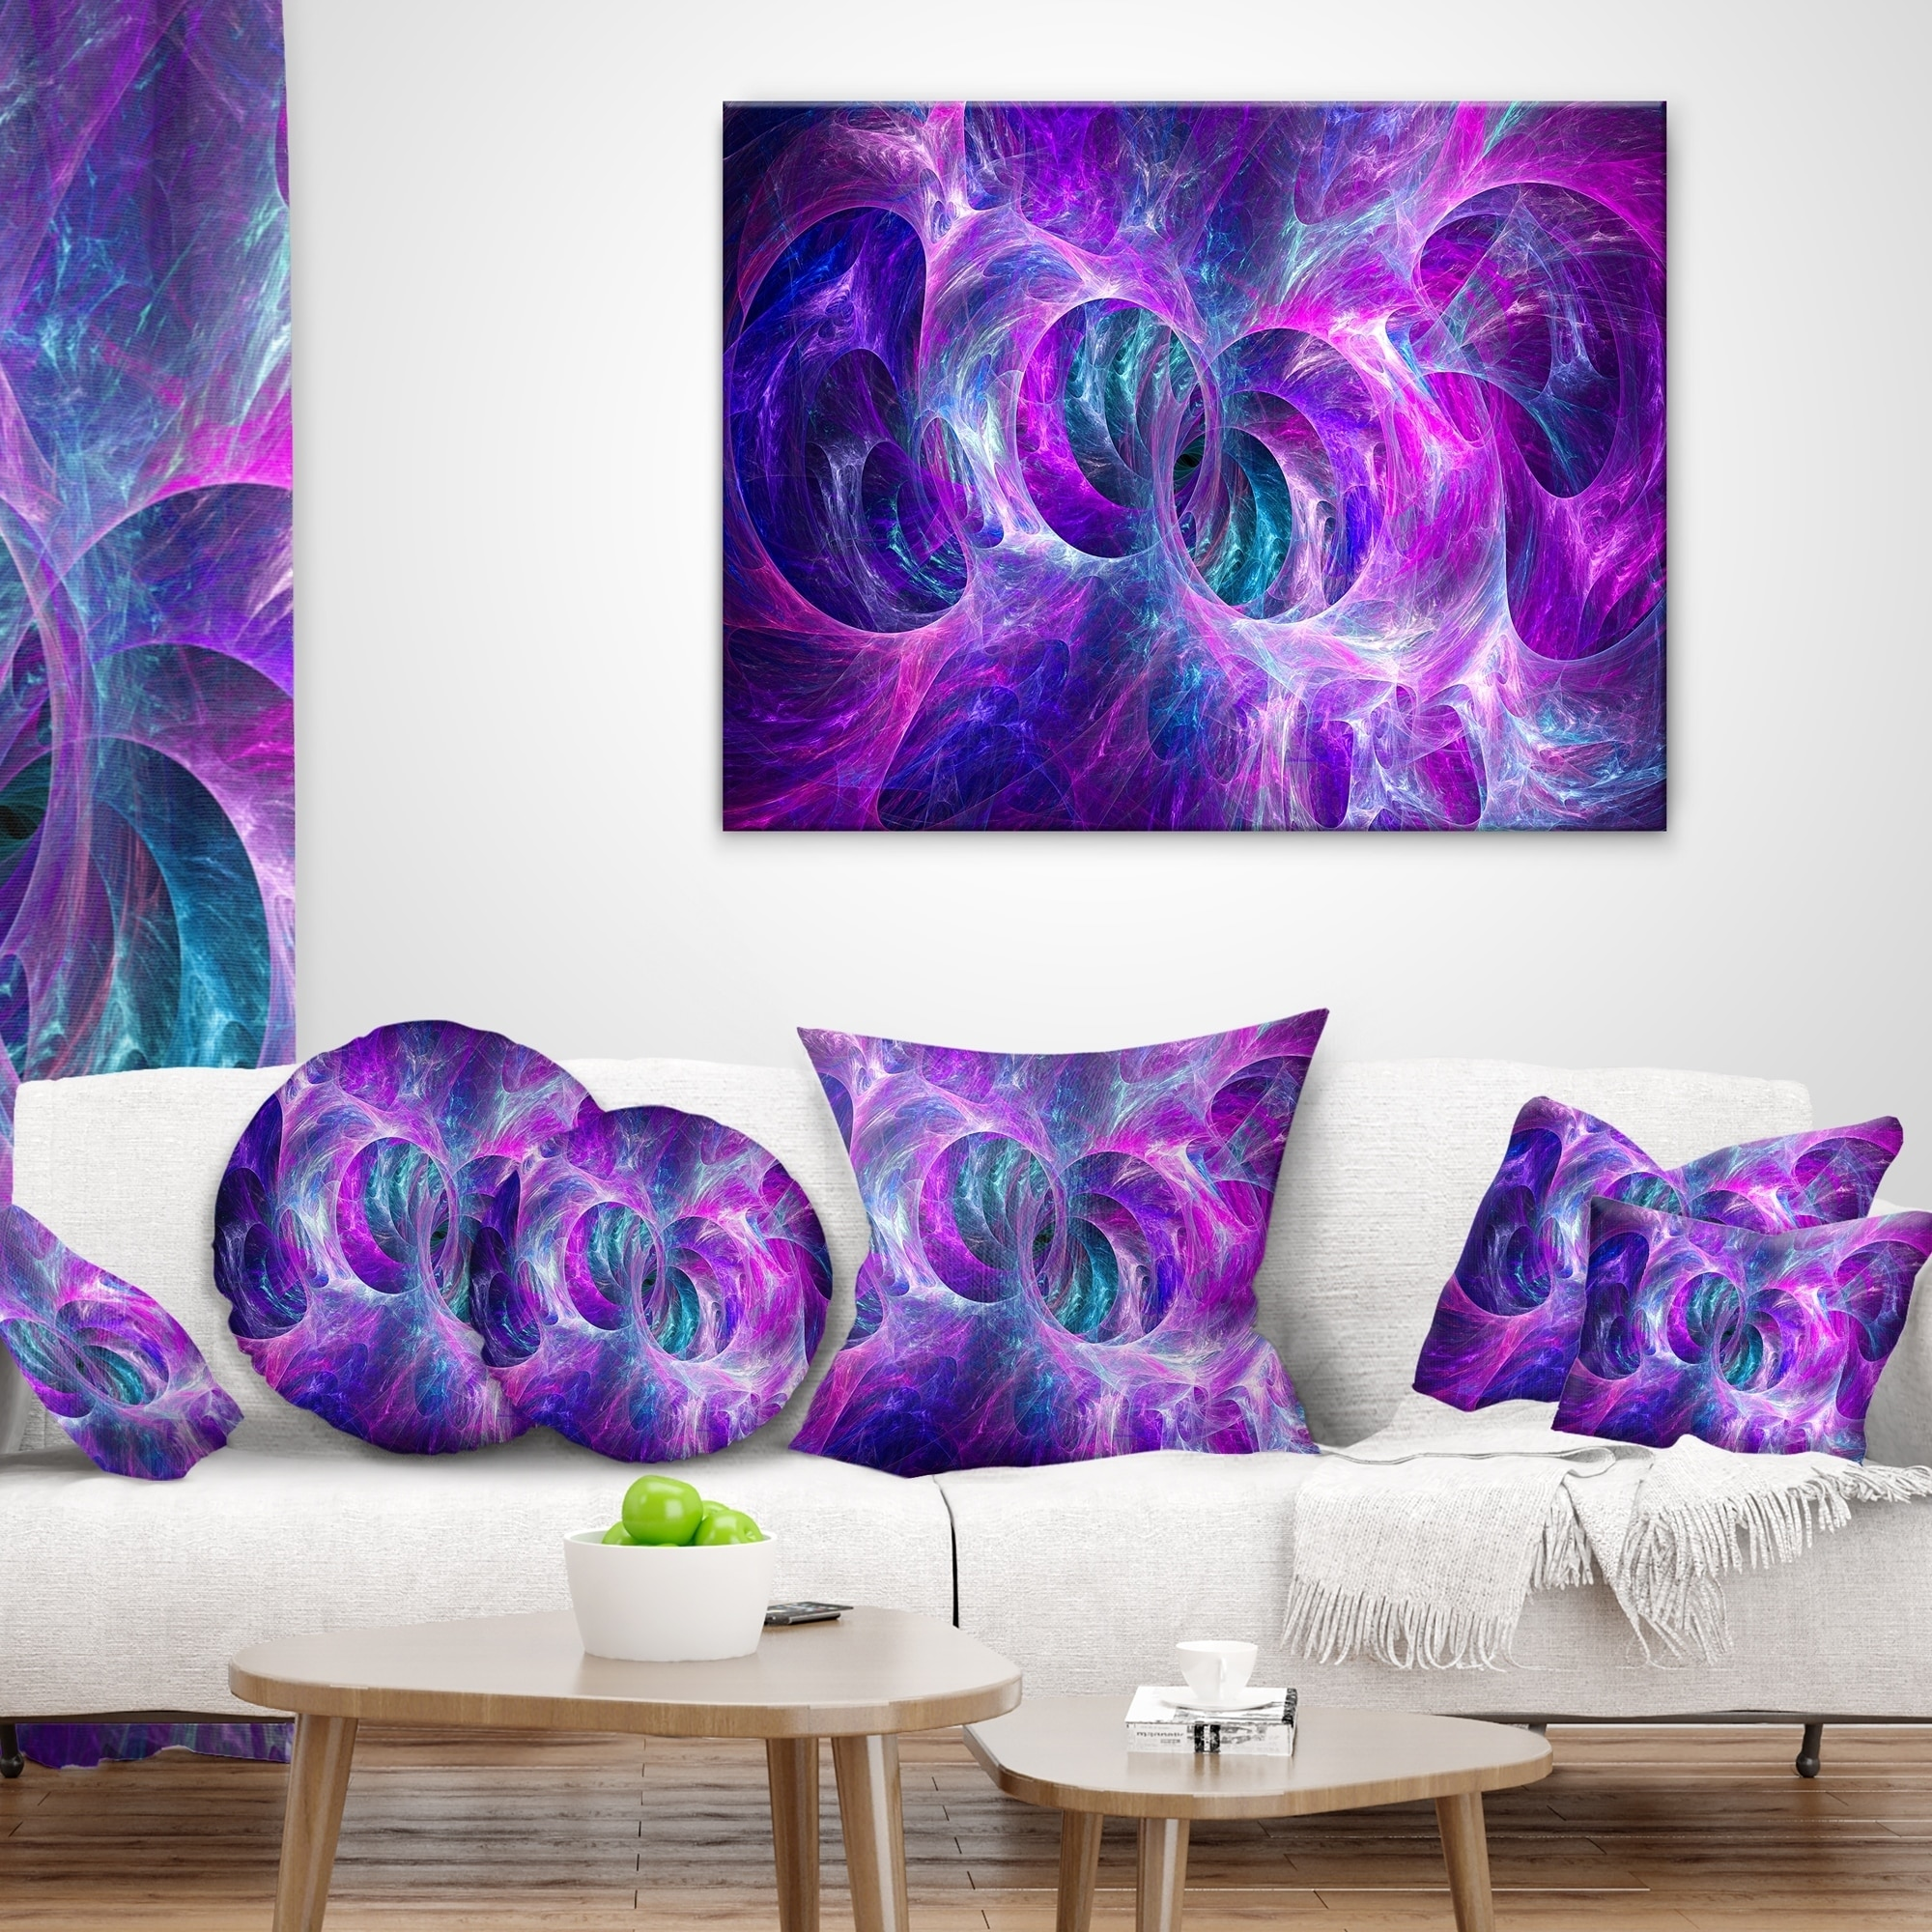 12 X 20 Designart Cu16198 12 20 Snow Purple Fractal Texture Abstract Lumbar Cushion Cover For Living Room Sofa Throw Pillow Throw Pillow Covers